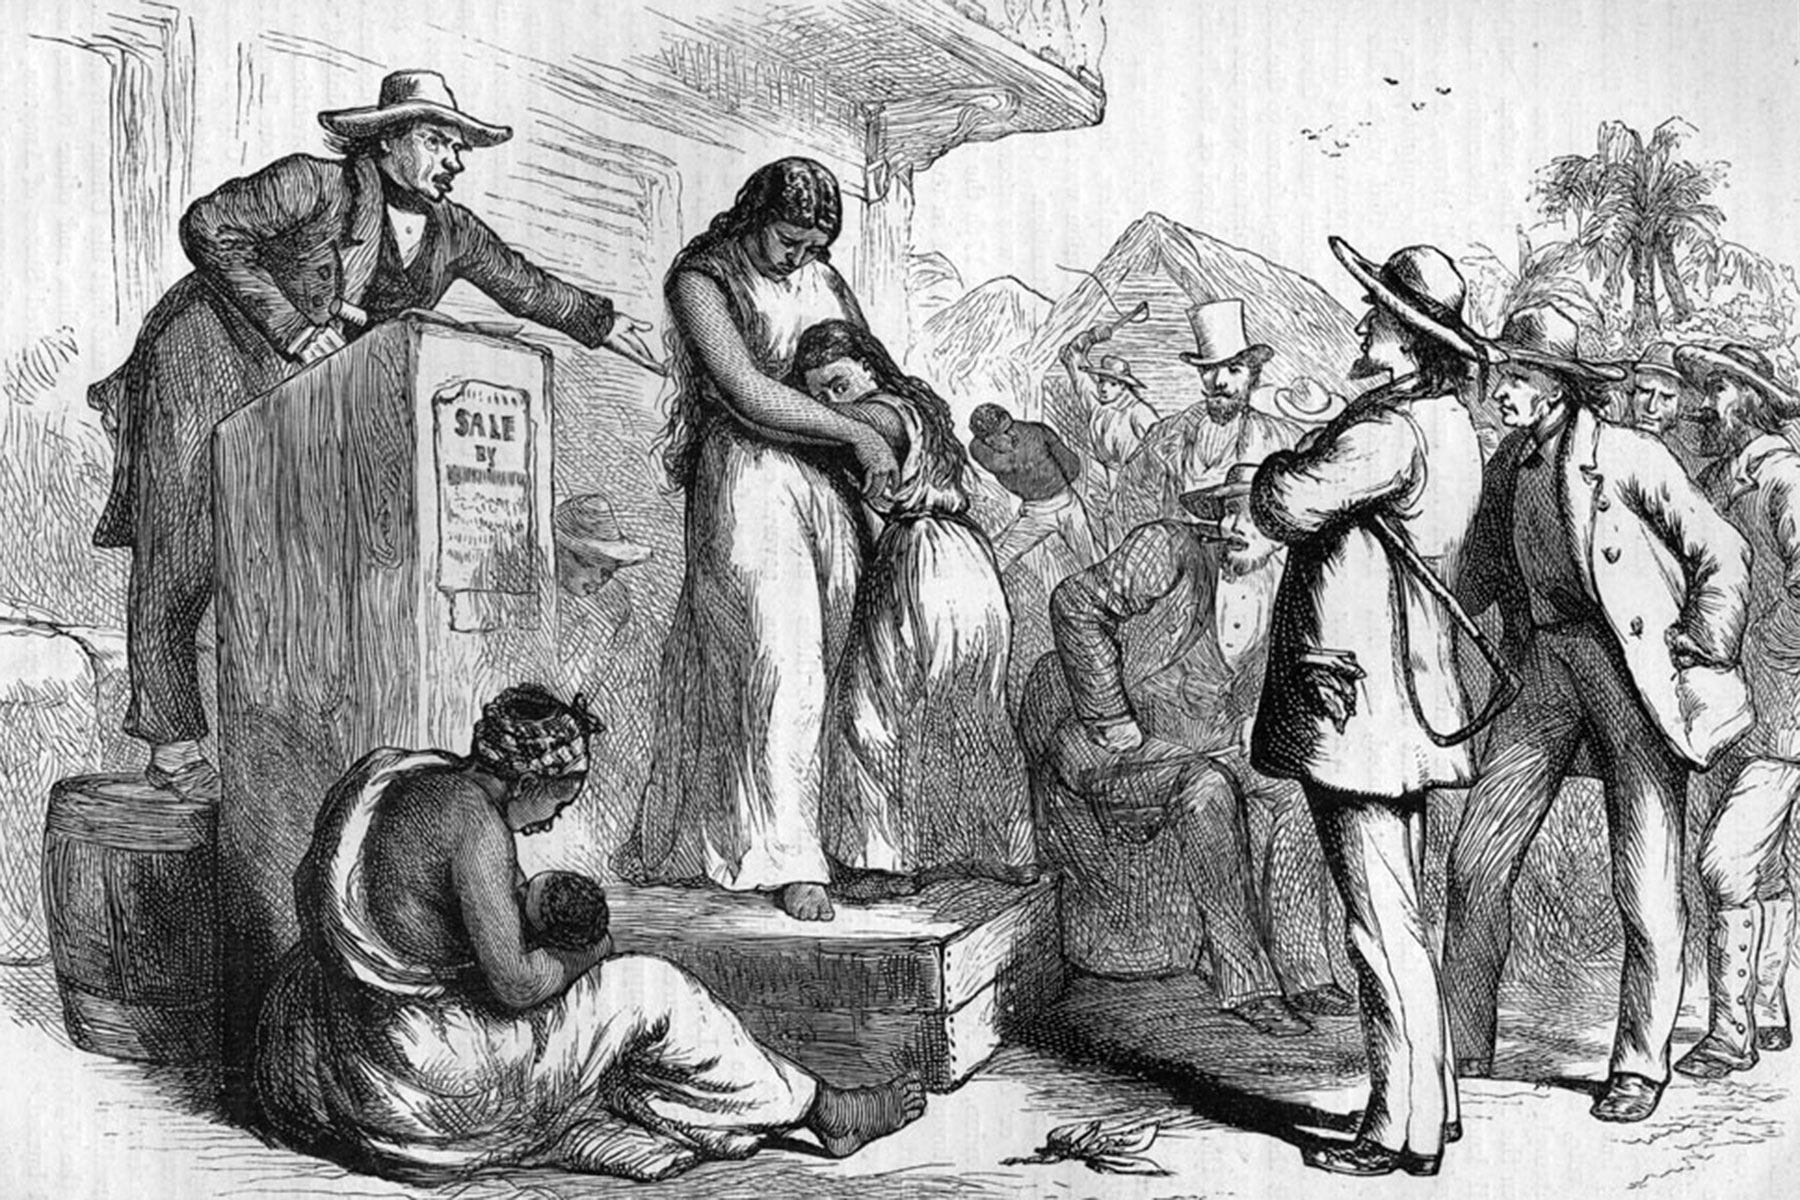 Much Of The Prosperity Of England Was Built On Slavery